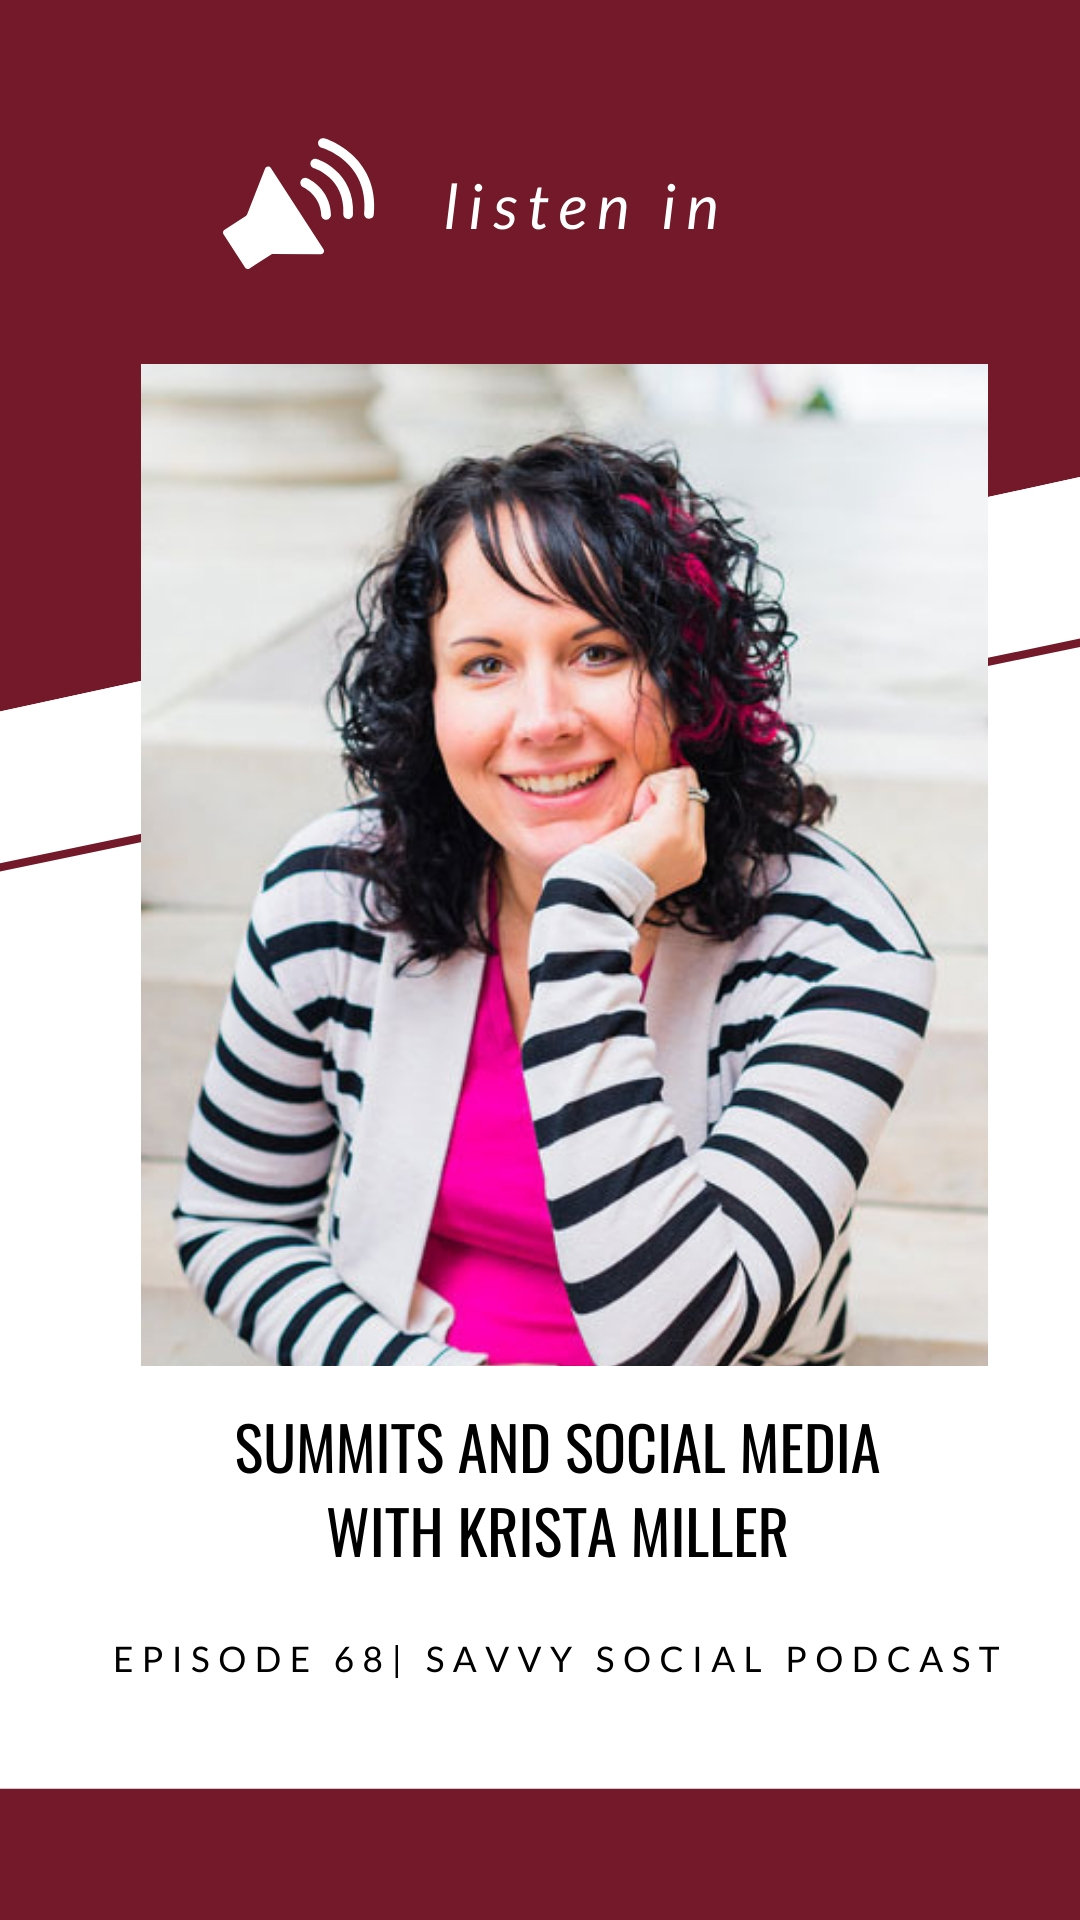 As an entrepreneur or business owner, you've probably heard that it's super important to narrow down your niche. Having a specific niche can help build your audience and your offering, but you may not know that it can also open the doors to hosting your own online summit! I talk with Krista Miller about how she got started in the world of summits, the value of knowing and understanding your niche, how live videos can encourage engagement, and how she uses Facebook Groups to build a summi...